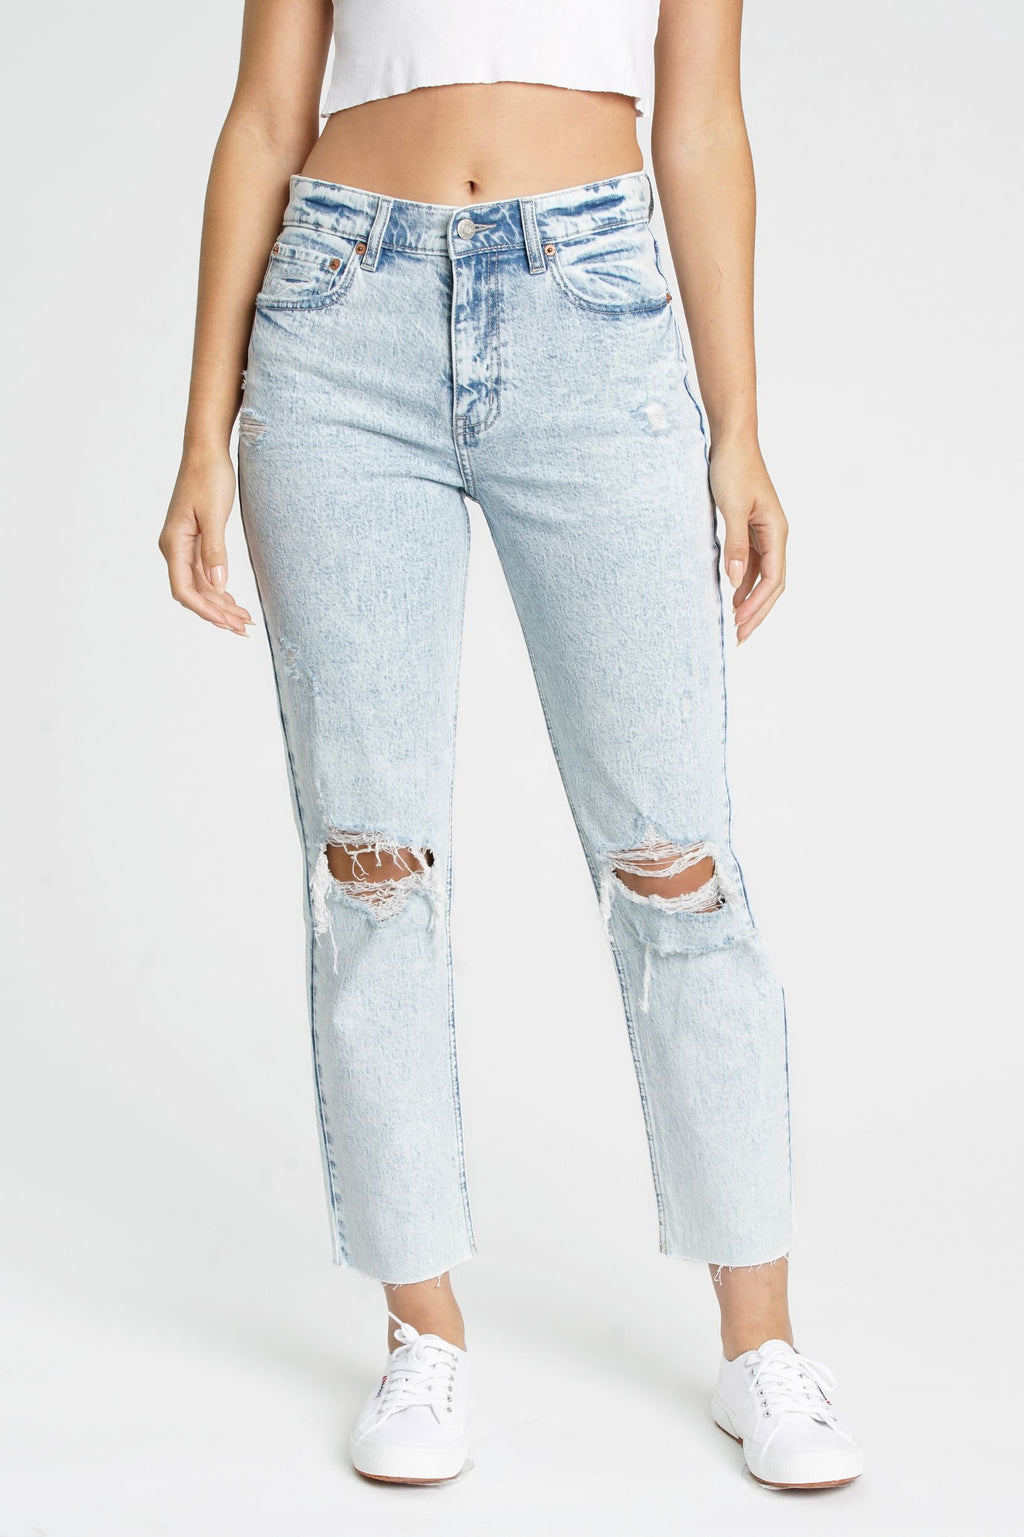 Straight Up High Rise Denim - Dalton Boutique